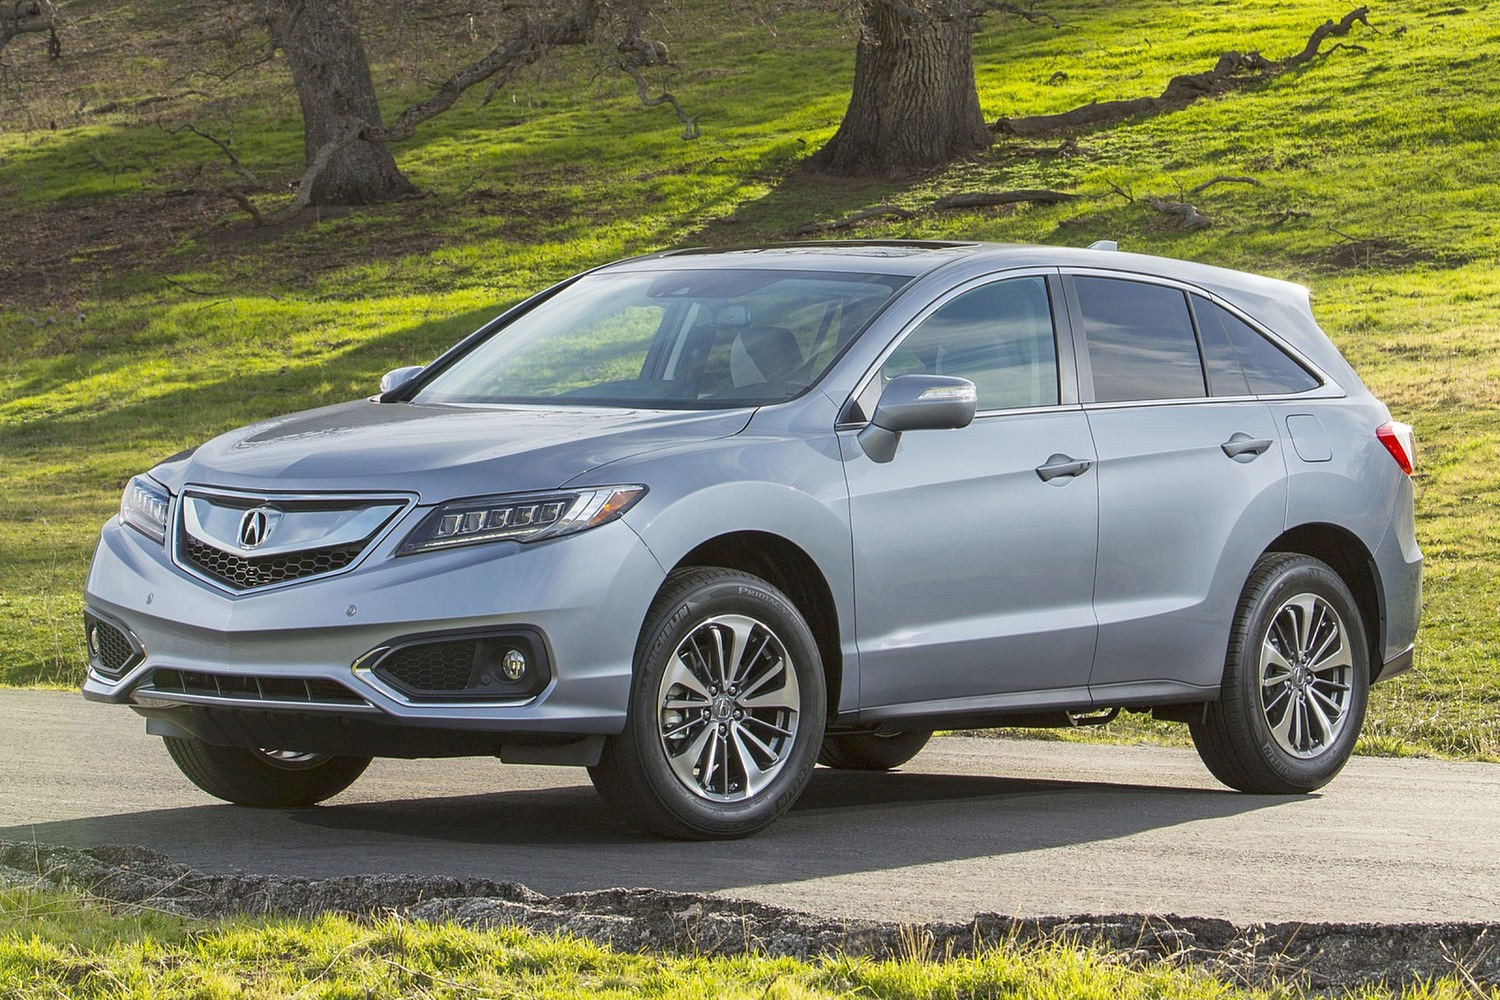 2016 Acura RDX Advance Package 4dr SUV Exterior